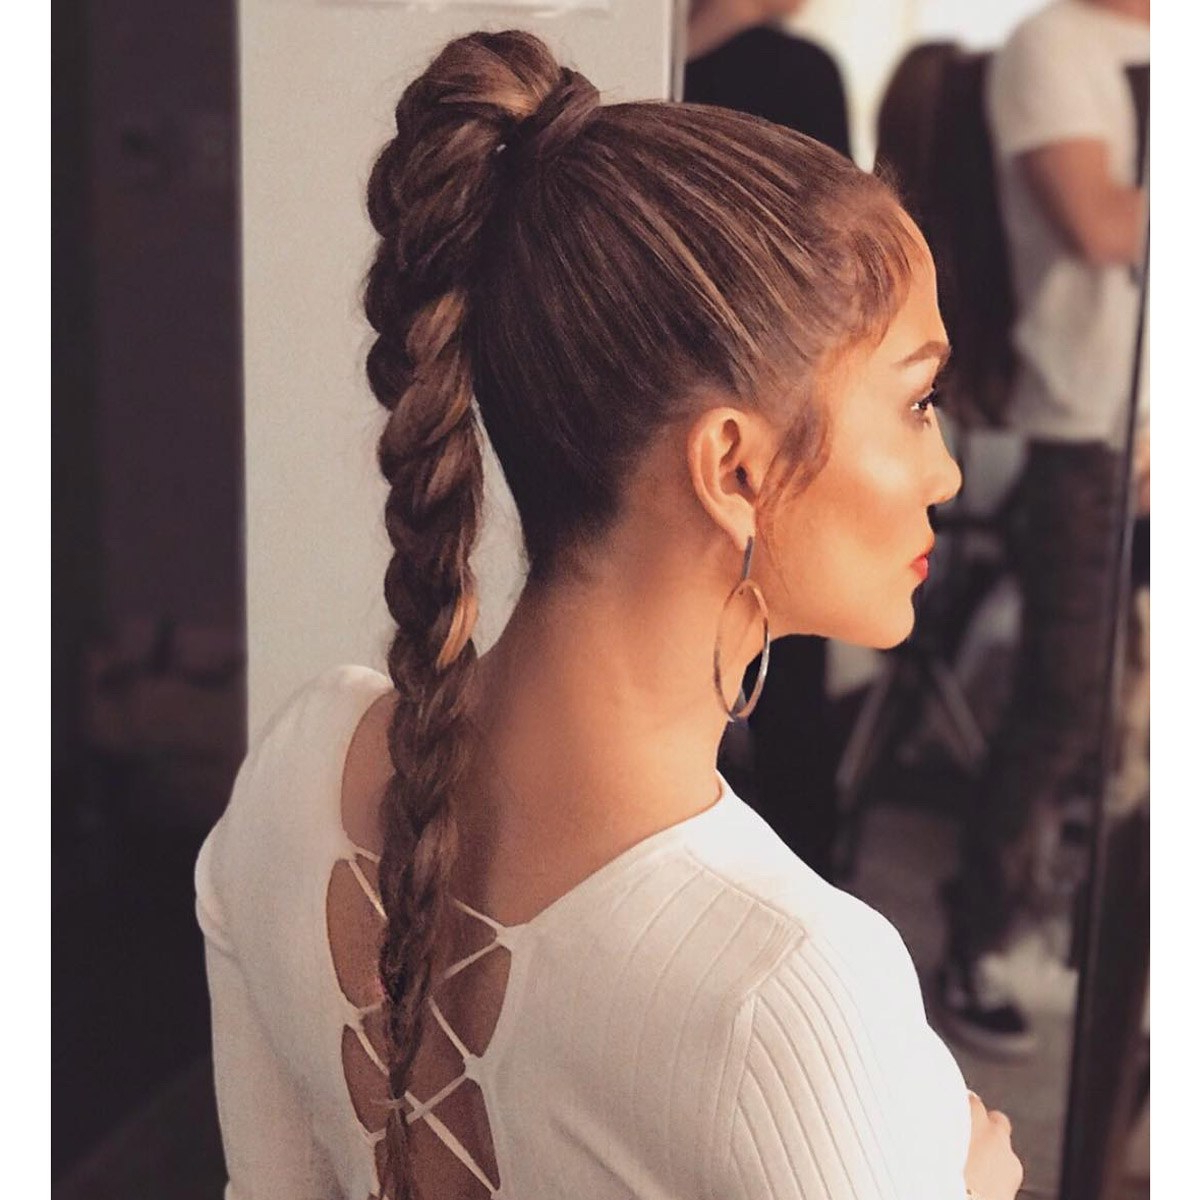 37 Cool Ponytail Hairstyles To Try In 2019 (Gallery 4 of 20)